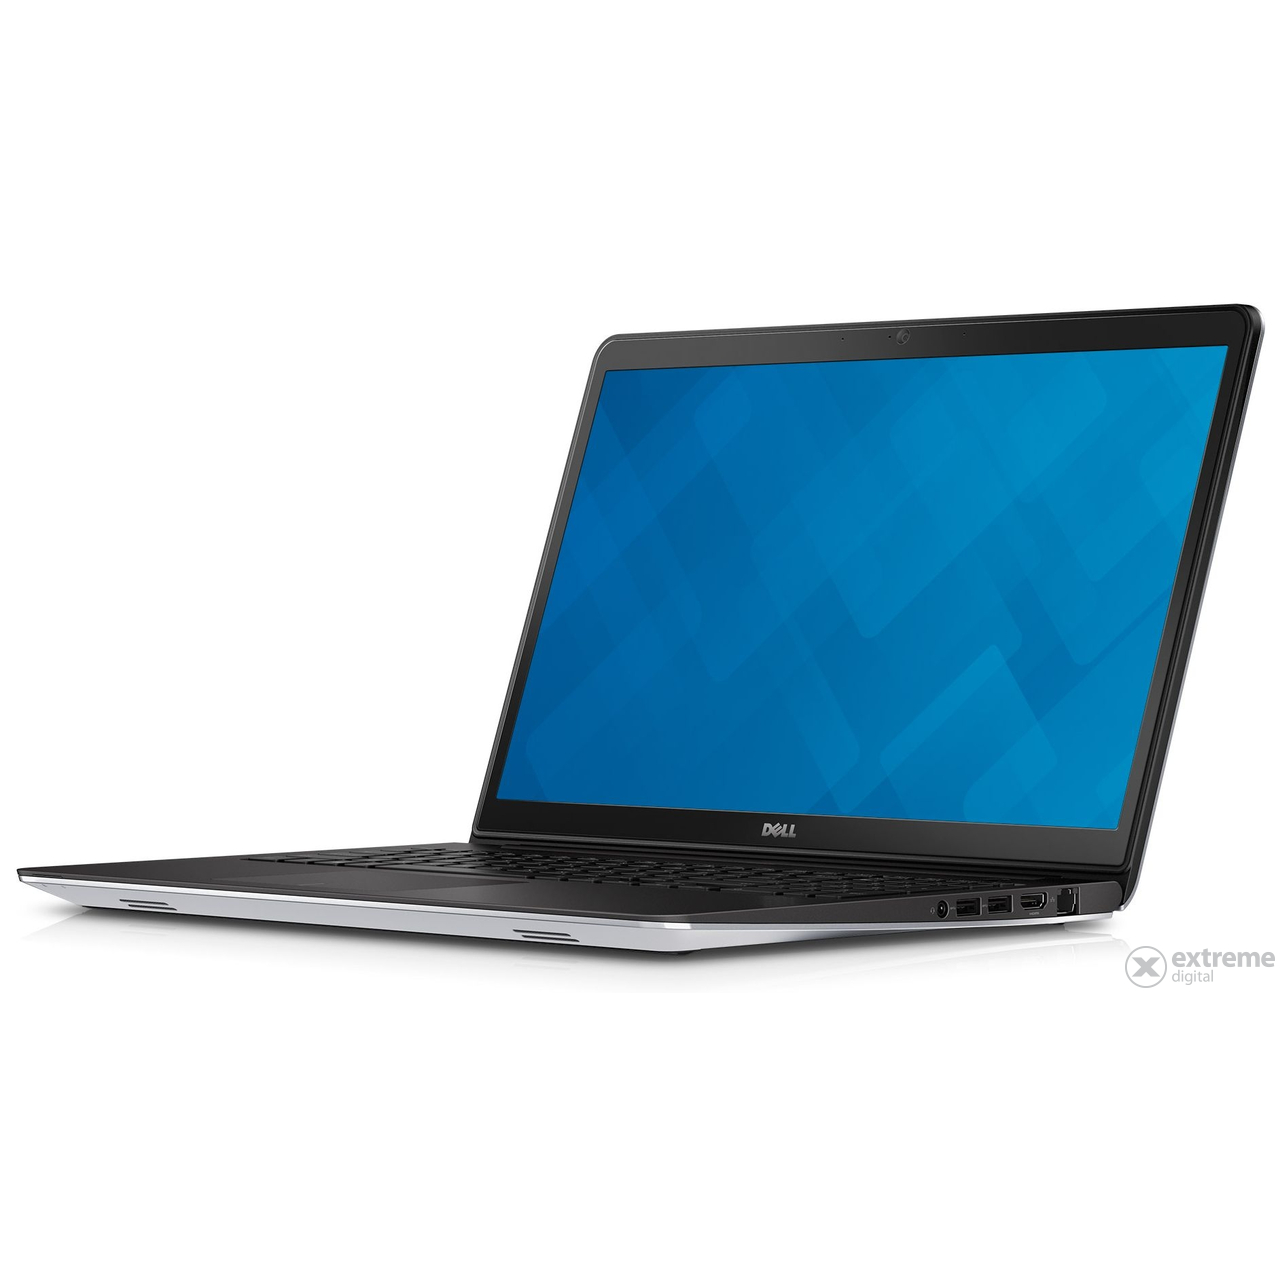 dell-inspiron-5548-176737-notebook-linux-ezust_c33083f5.jpg